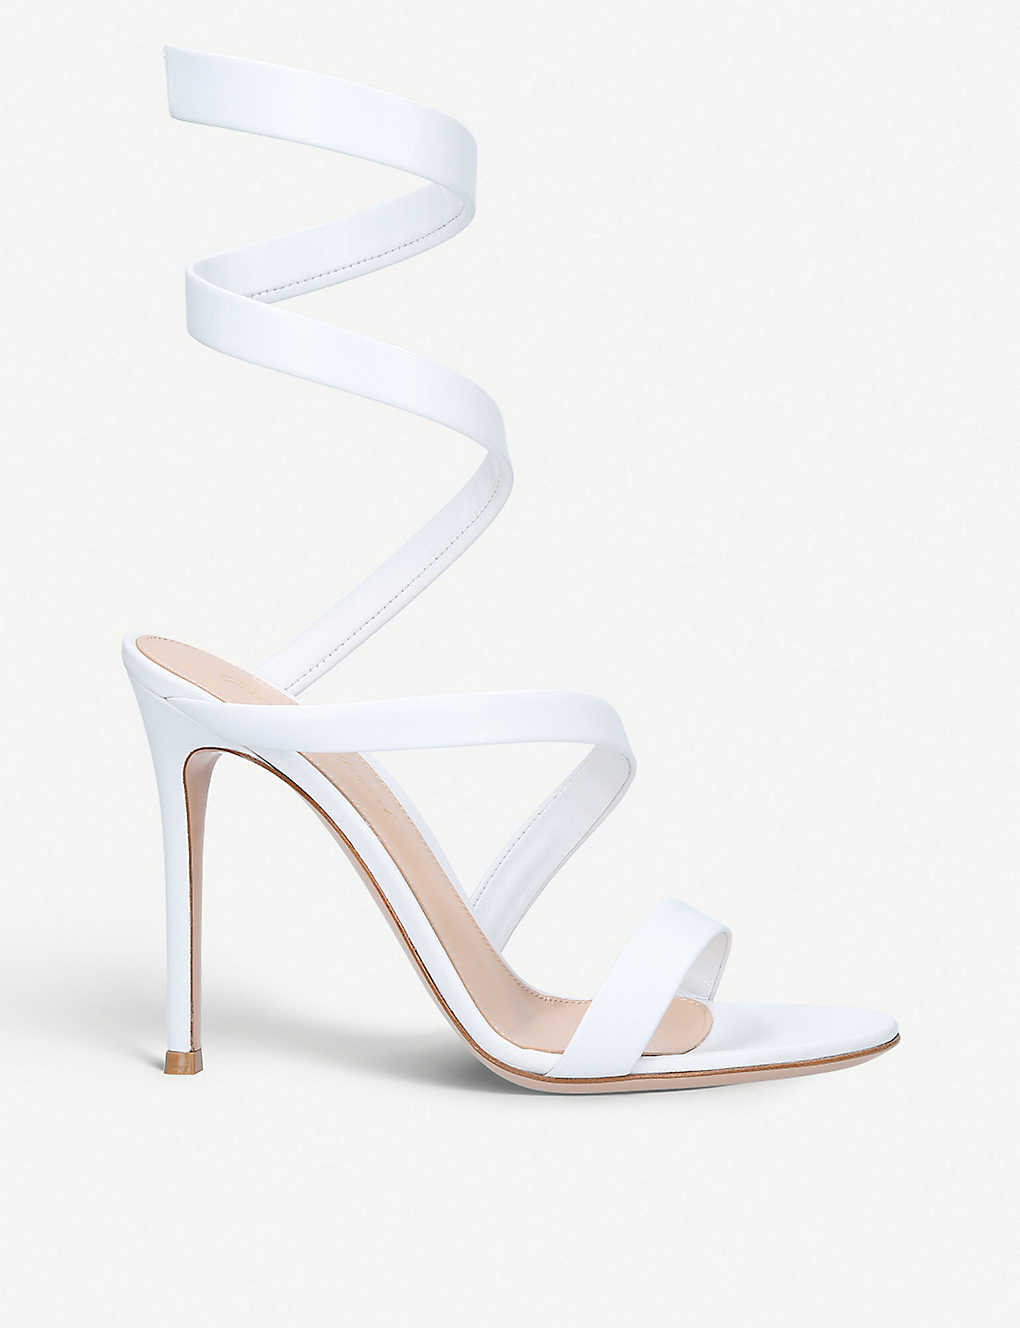 f7f64ac779 GIANVITO ROSSI - Opera 105 leather strappy sandals | Selfridges.com